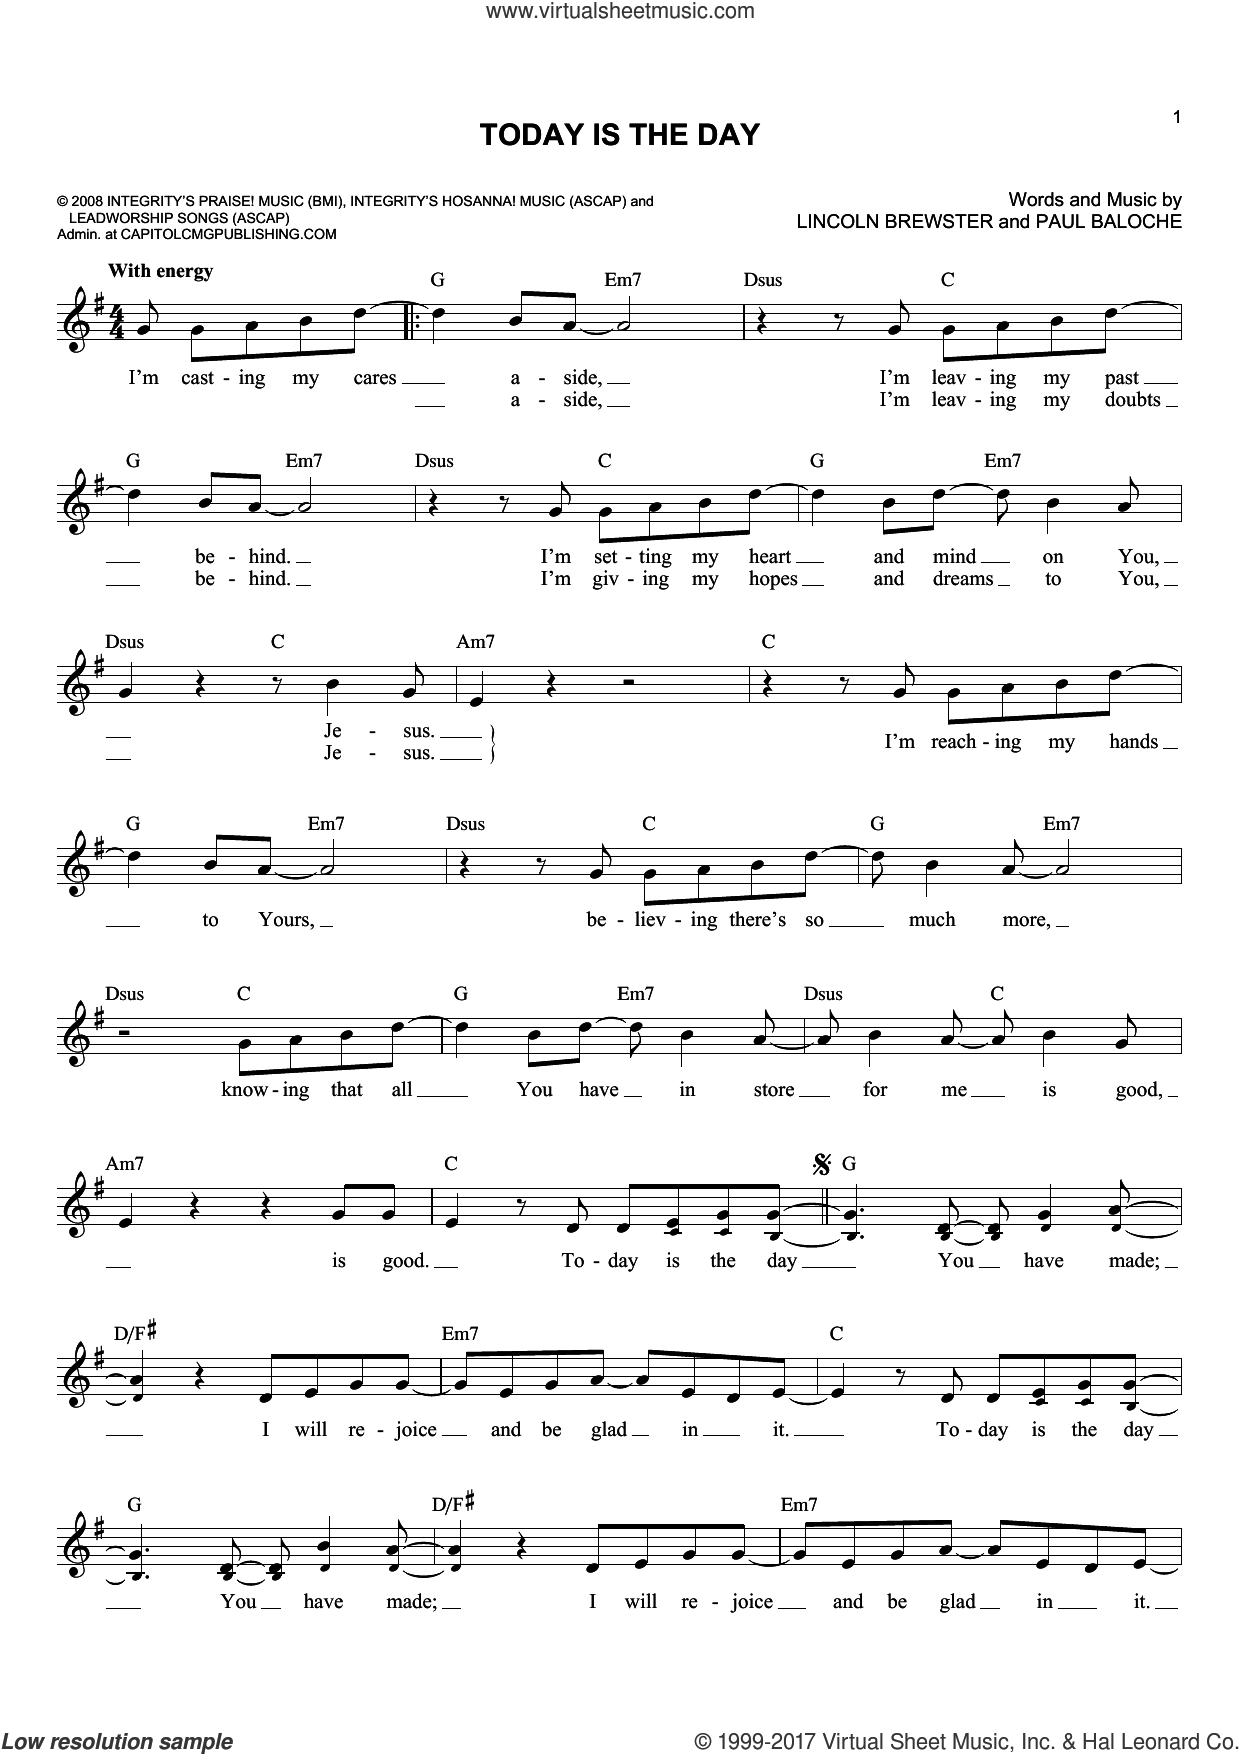 Today Is The Day sheet music for voice and other instruments (fake book) by Lincoln Brewster and Paul Baloche, intermediate skill level